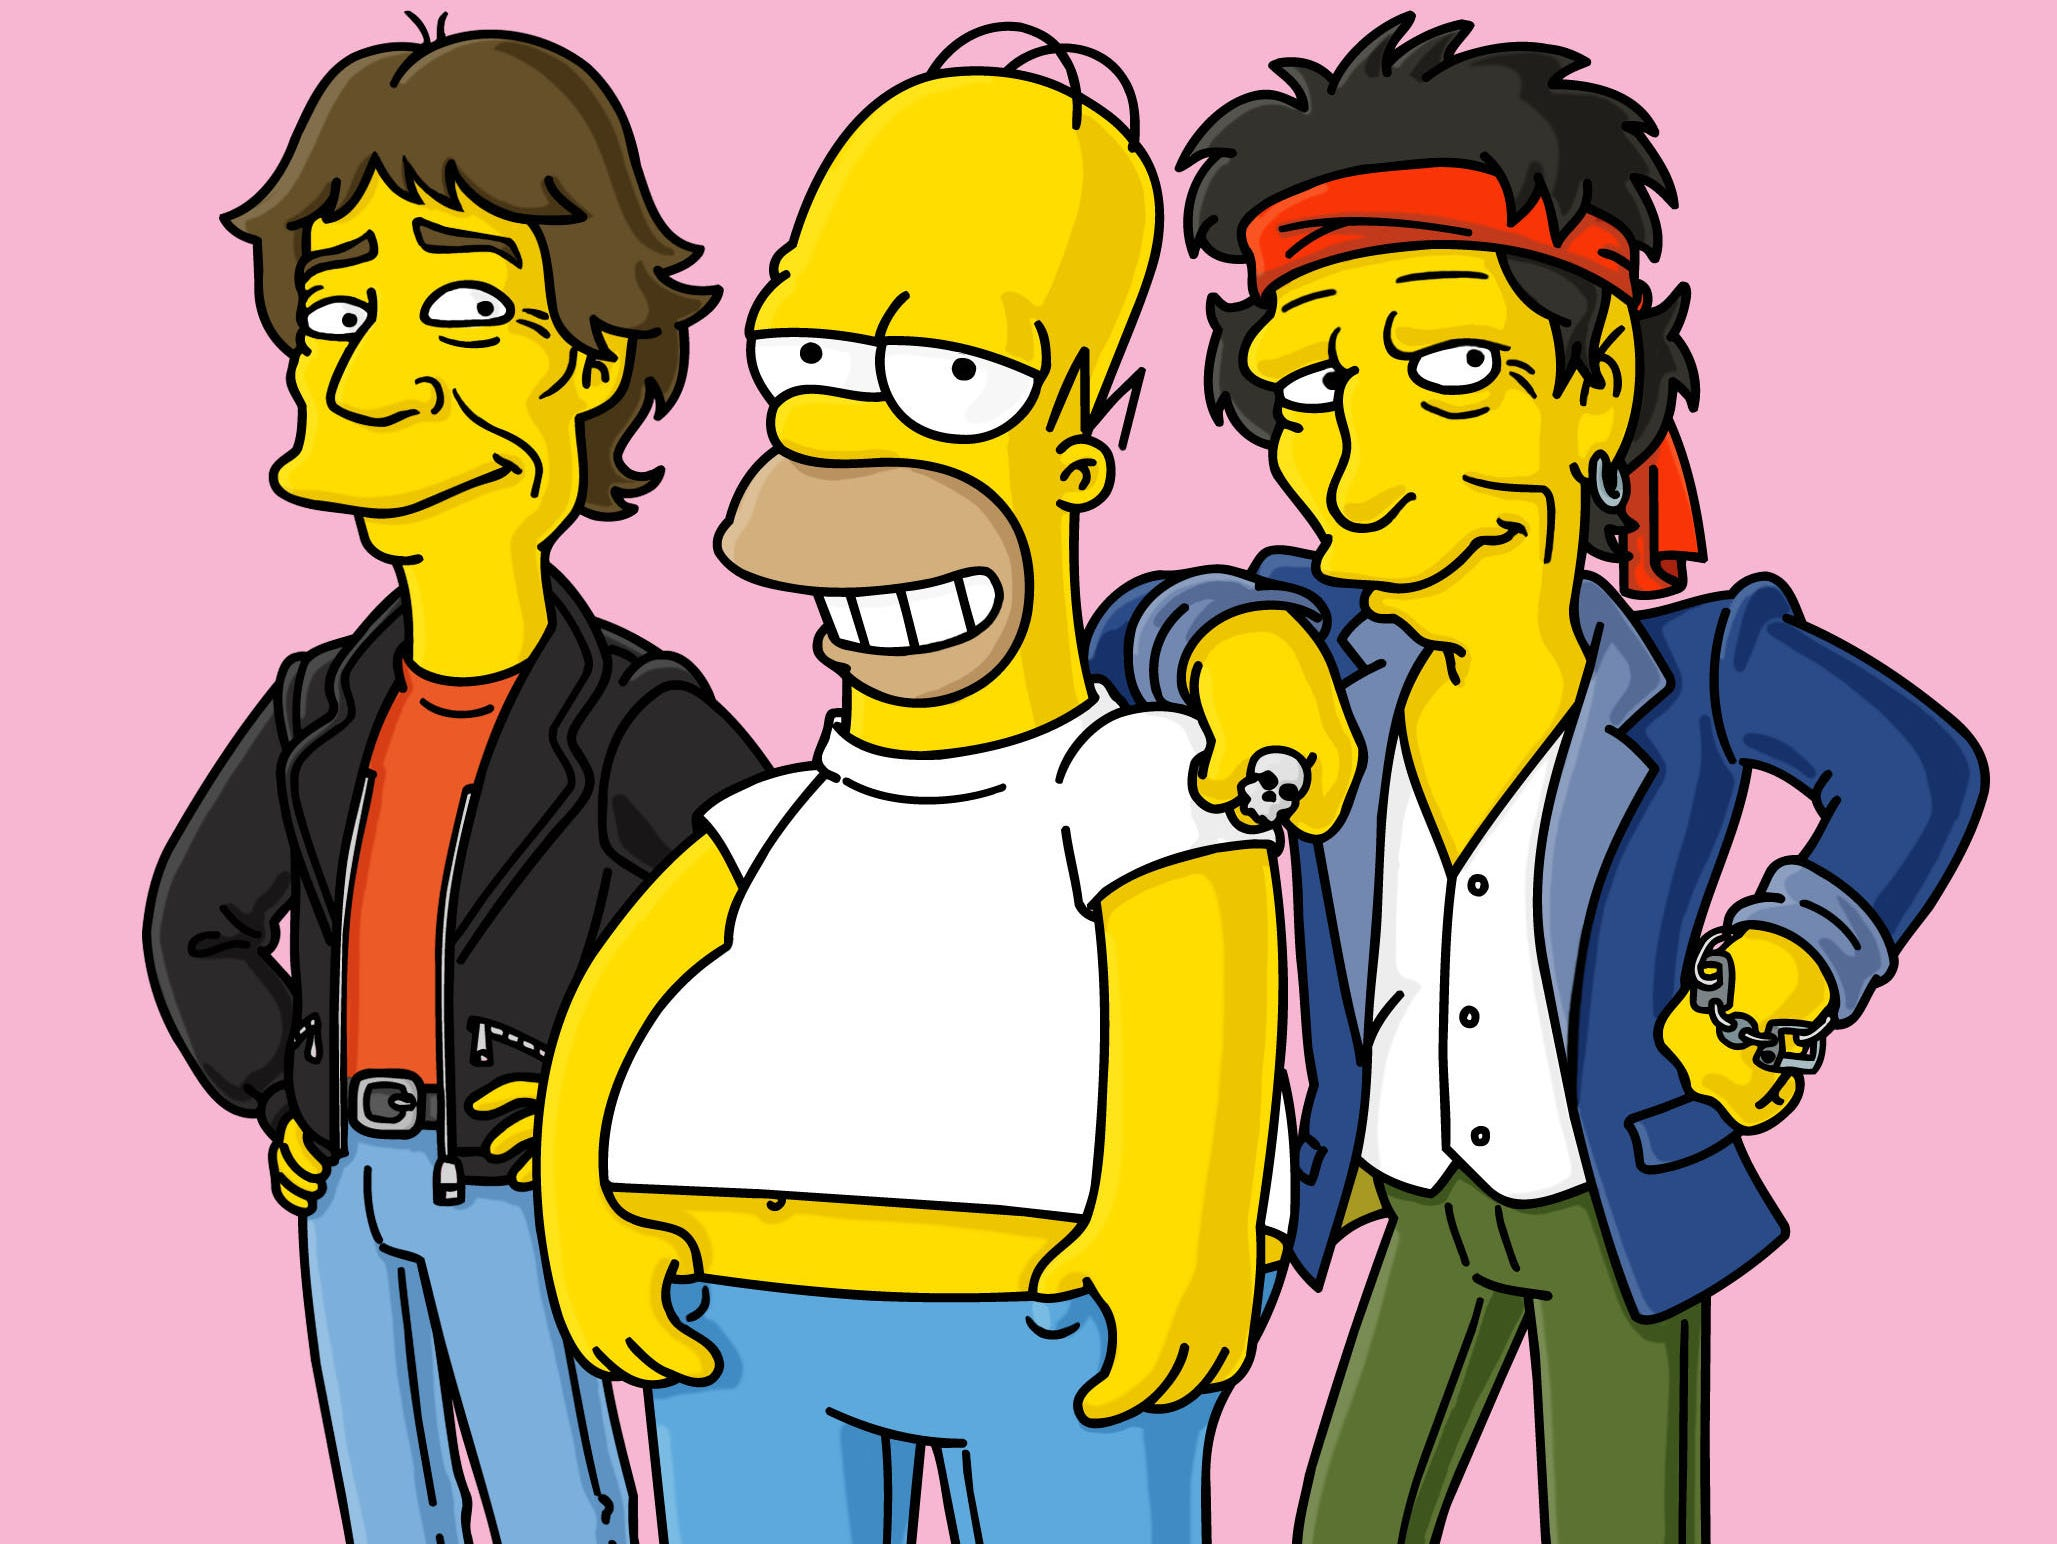 "THE SIMPSONS: LONG LIVE ROCK! Rock superstars guest voice on THE SIMPSONS season premiere episode ""How I Spent My Strummer Vacation""  Sunday, Nov. 10 (8:30-9:00 PM ET/PT) on FOX. L-R: Mick Jagger , Homer Simpson, and Keith Richards.  --- DATE TAKEN: Unavailable     ©2002FOX         HO      - handout ORG XMIT: PX88392"